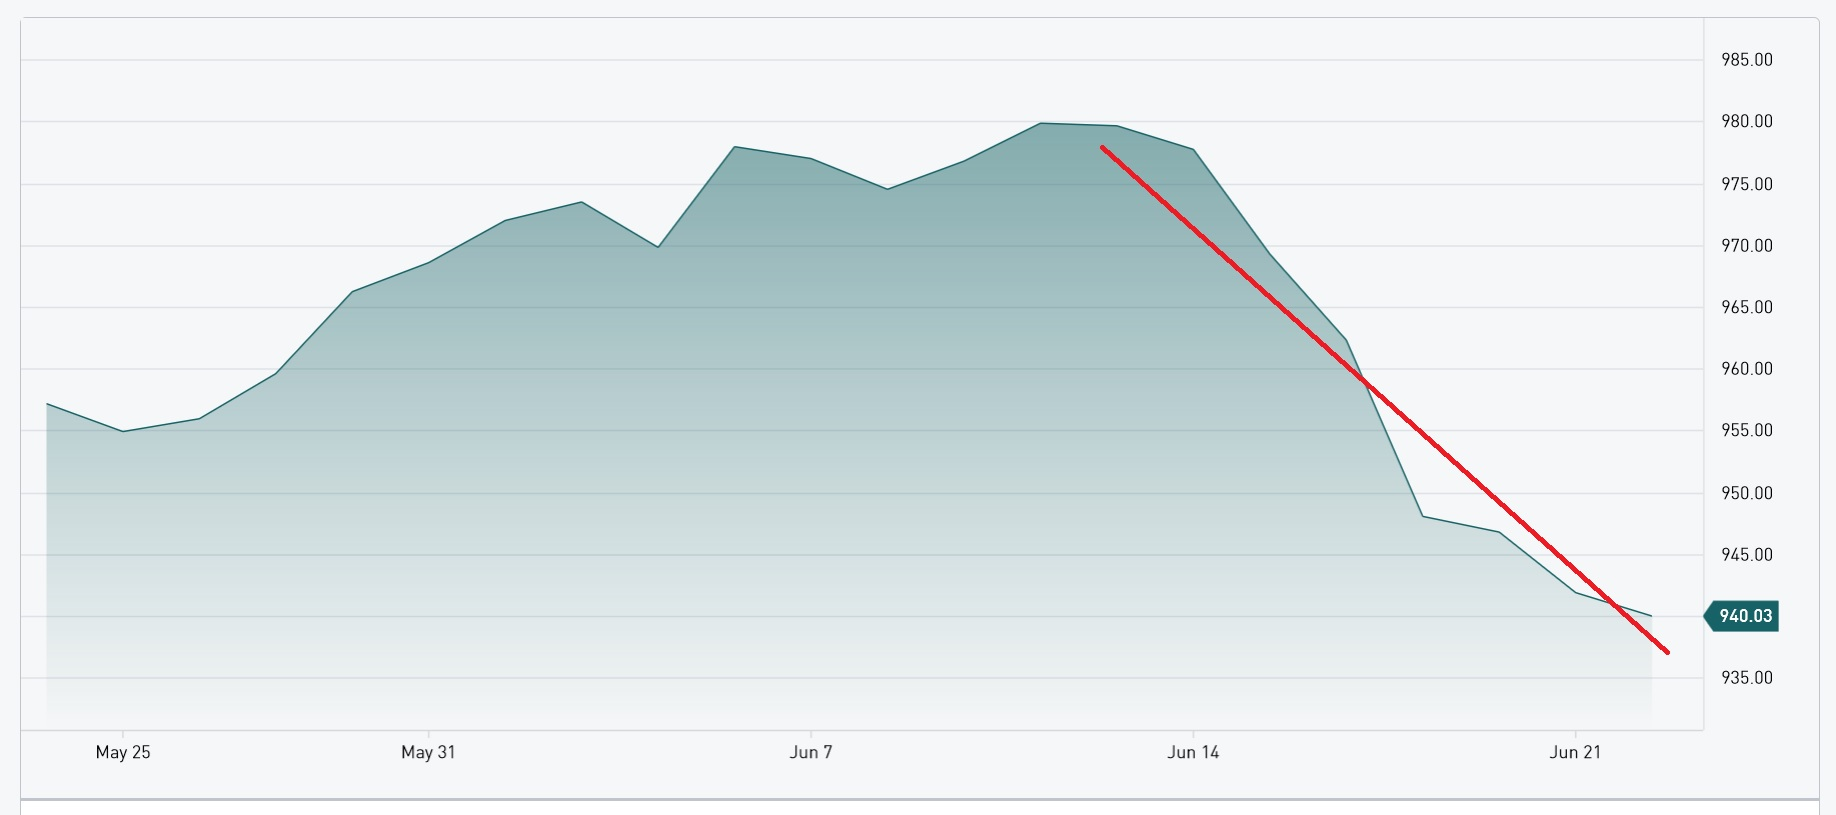 tsx venture declines dramatically in June